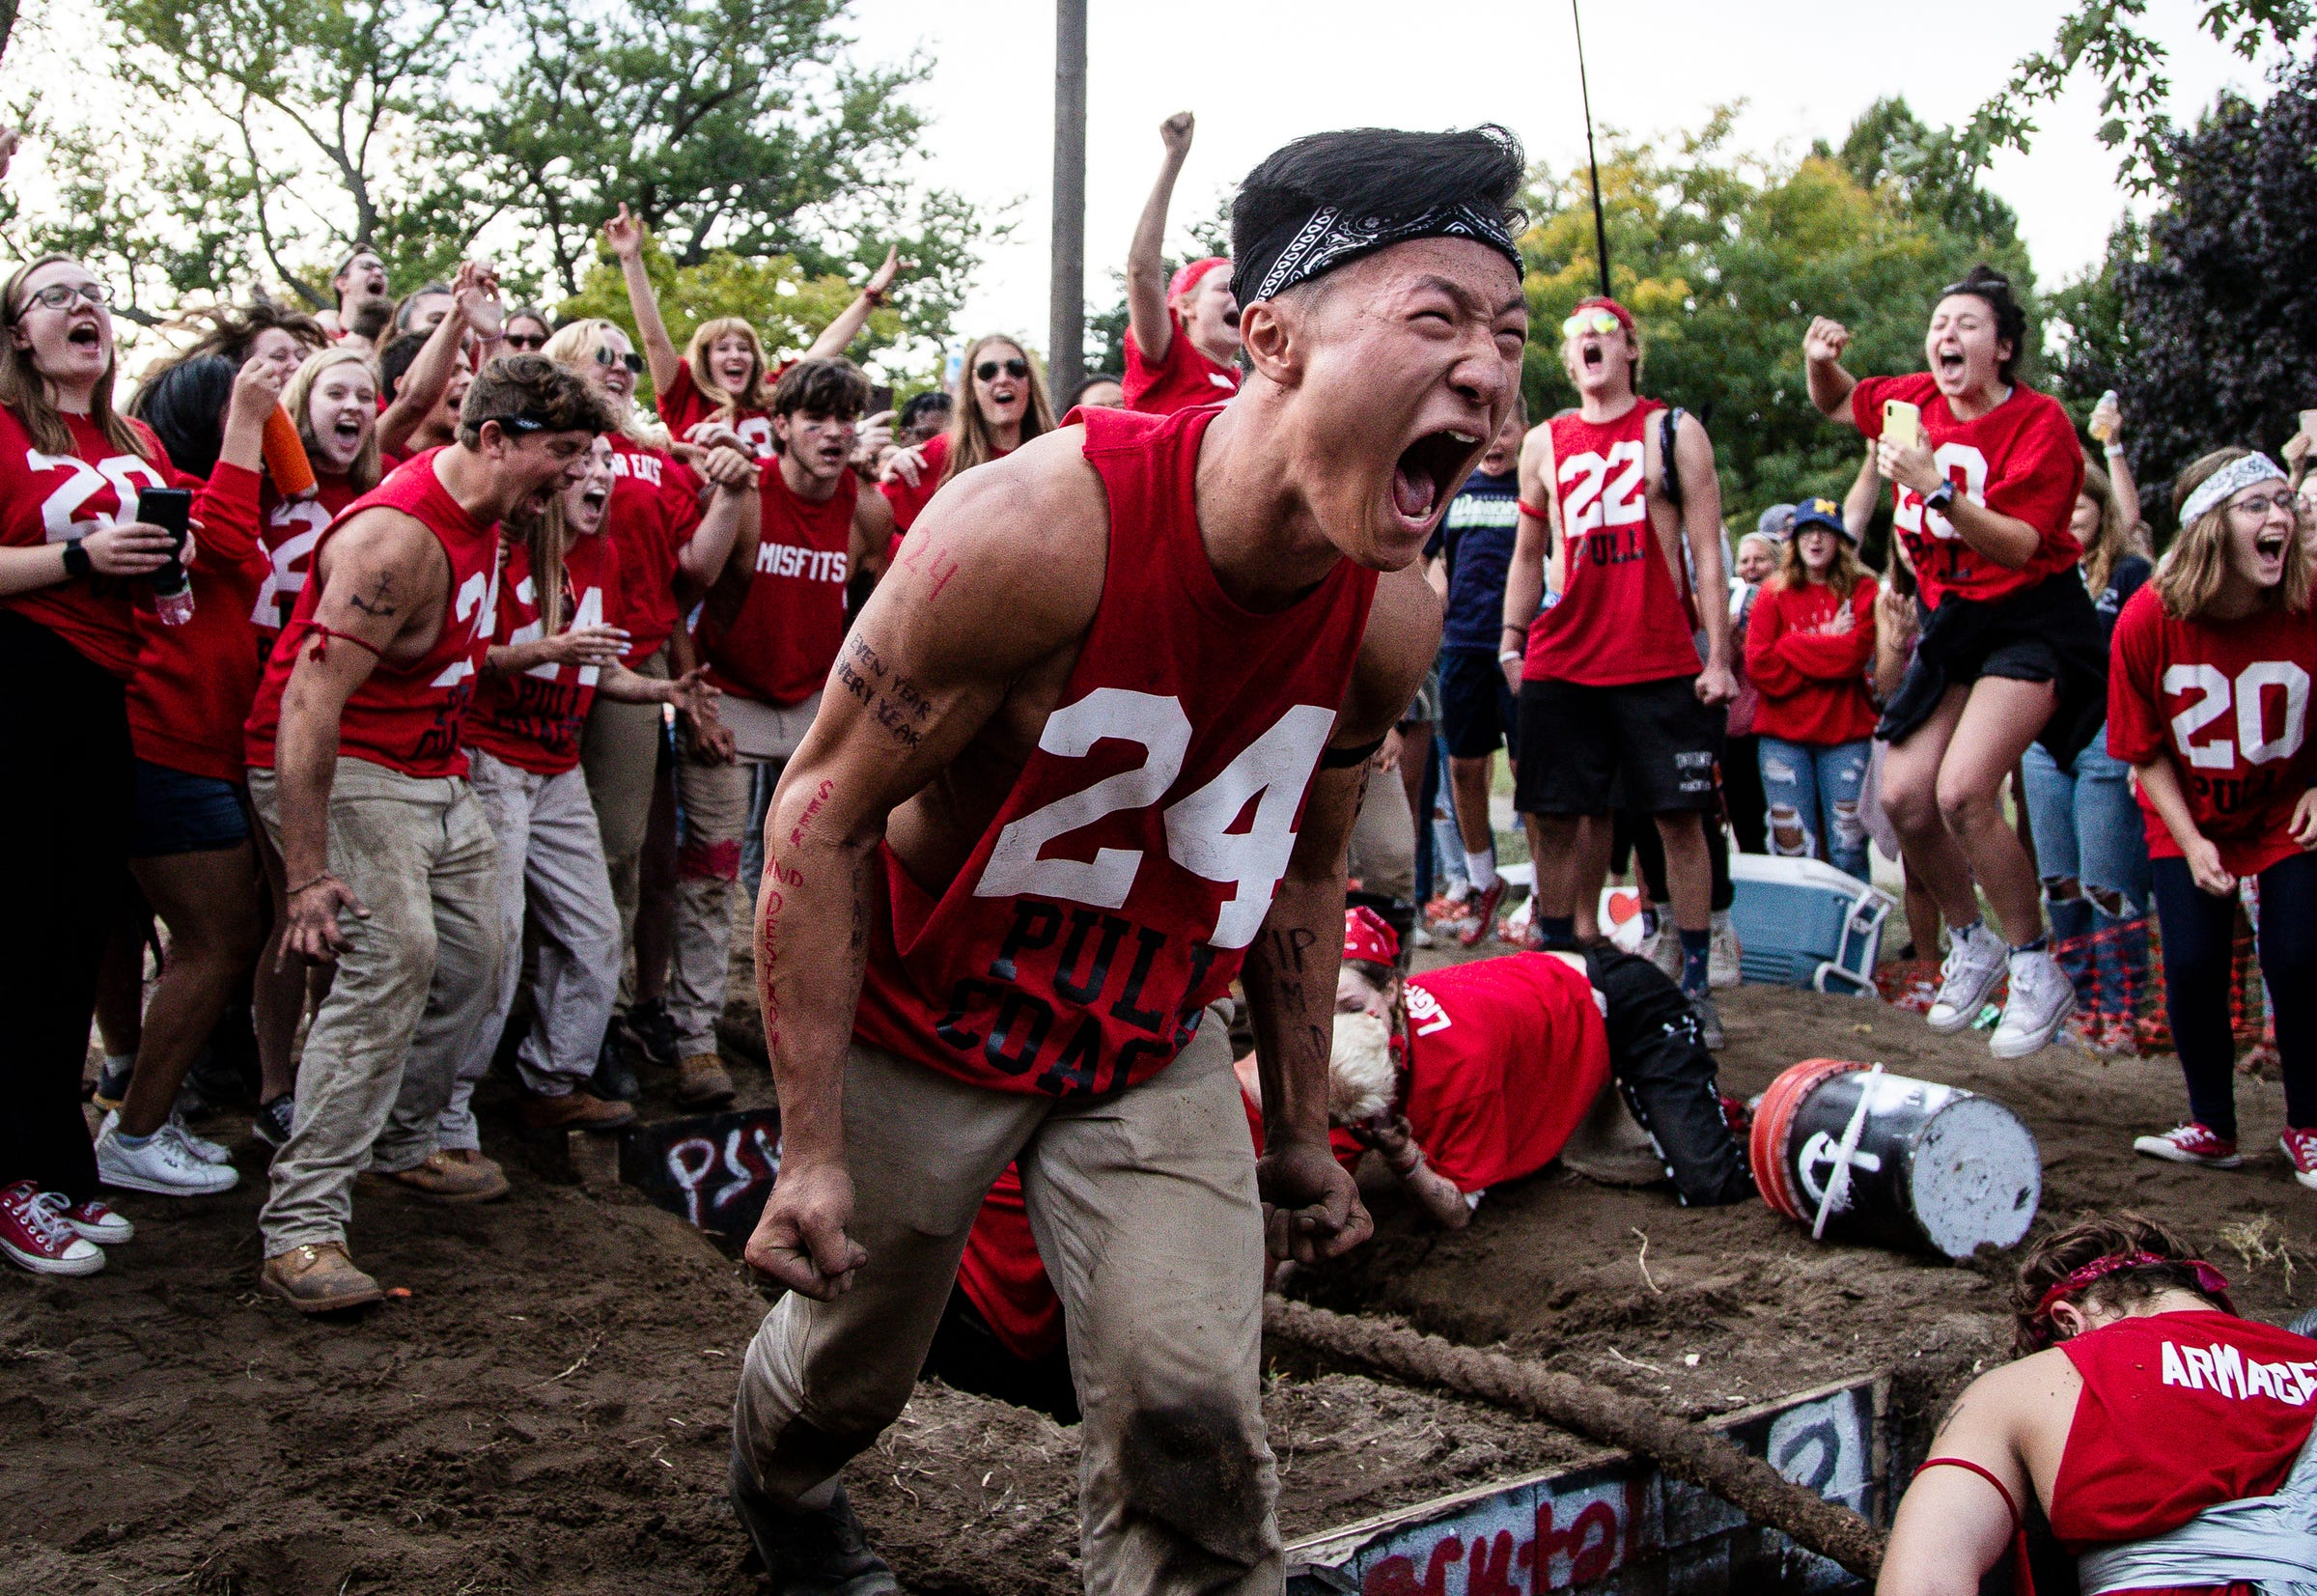 Ryan Baek, an even year team pull coach celebrates as the team reacts to winning this year's The Pull, an annual tug-of-war between the freshman and sophomore classes at Hope College in Holland on Saturday, Oct. 2, 2021.